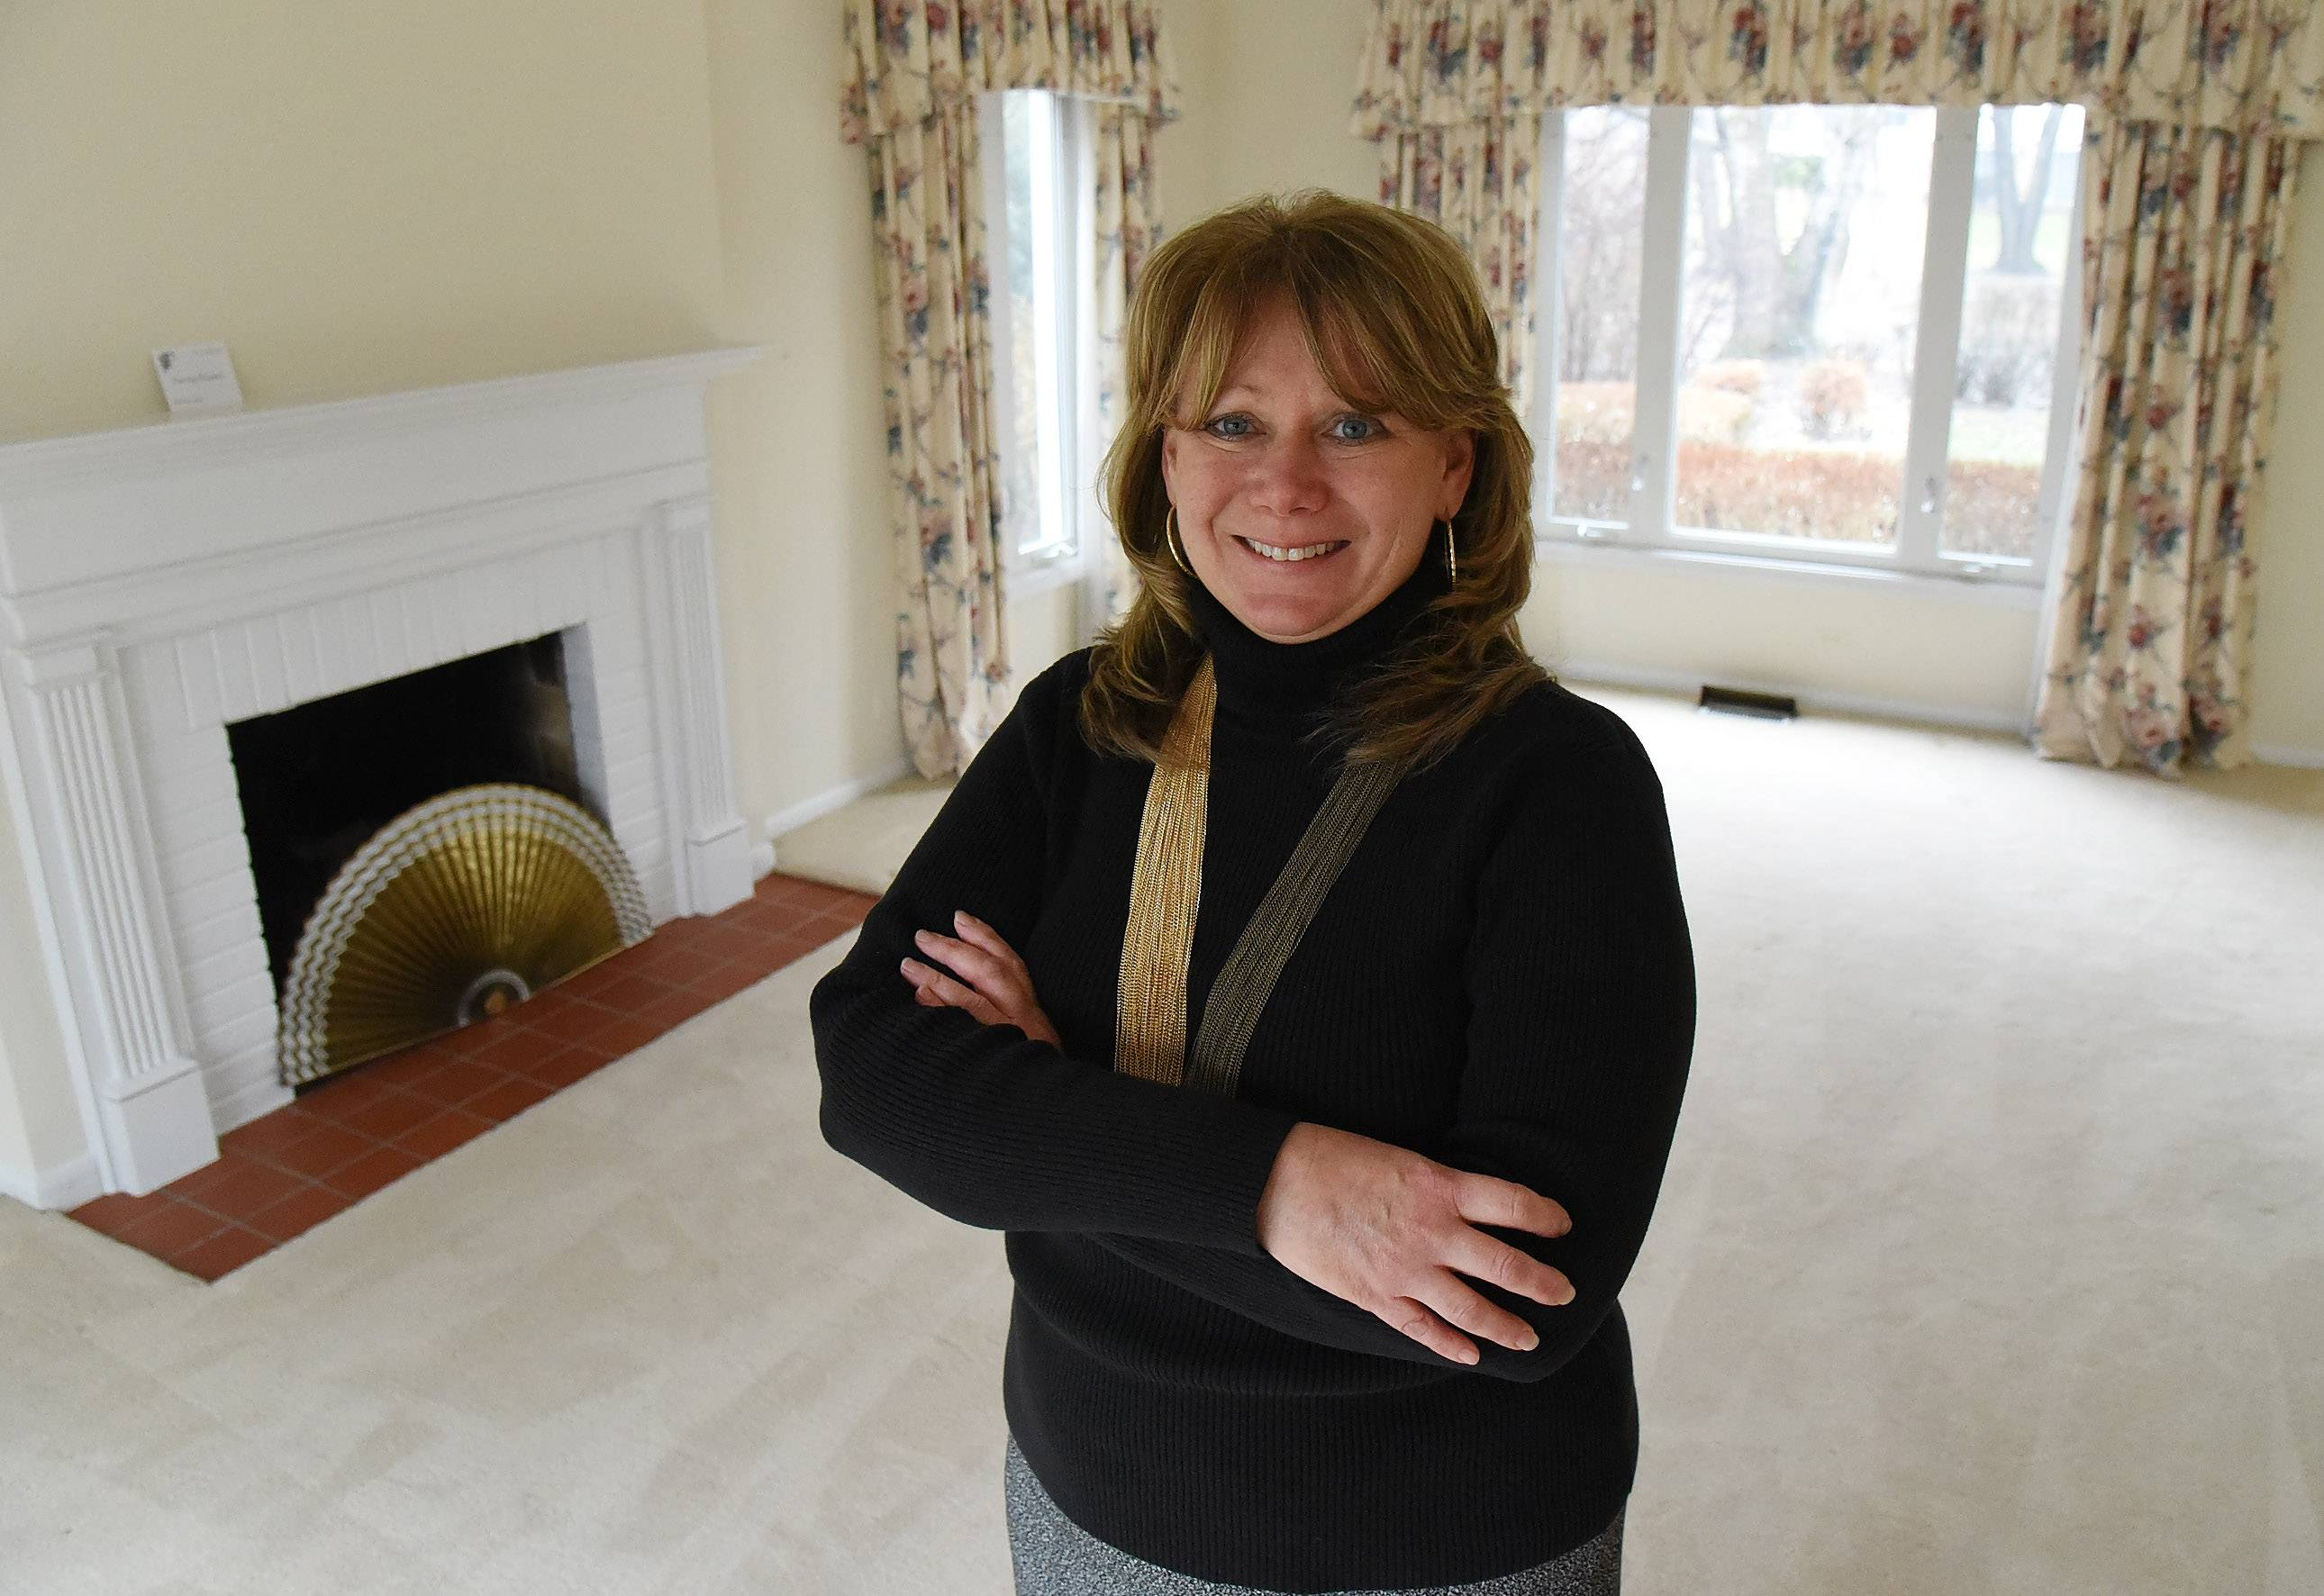 First-time homebuyers are looking for homes in good school districts, says Mary Zander of Picket Fence Realty in Mount Prospect.